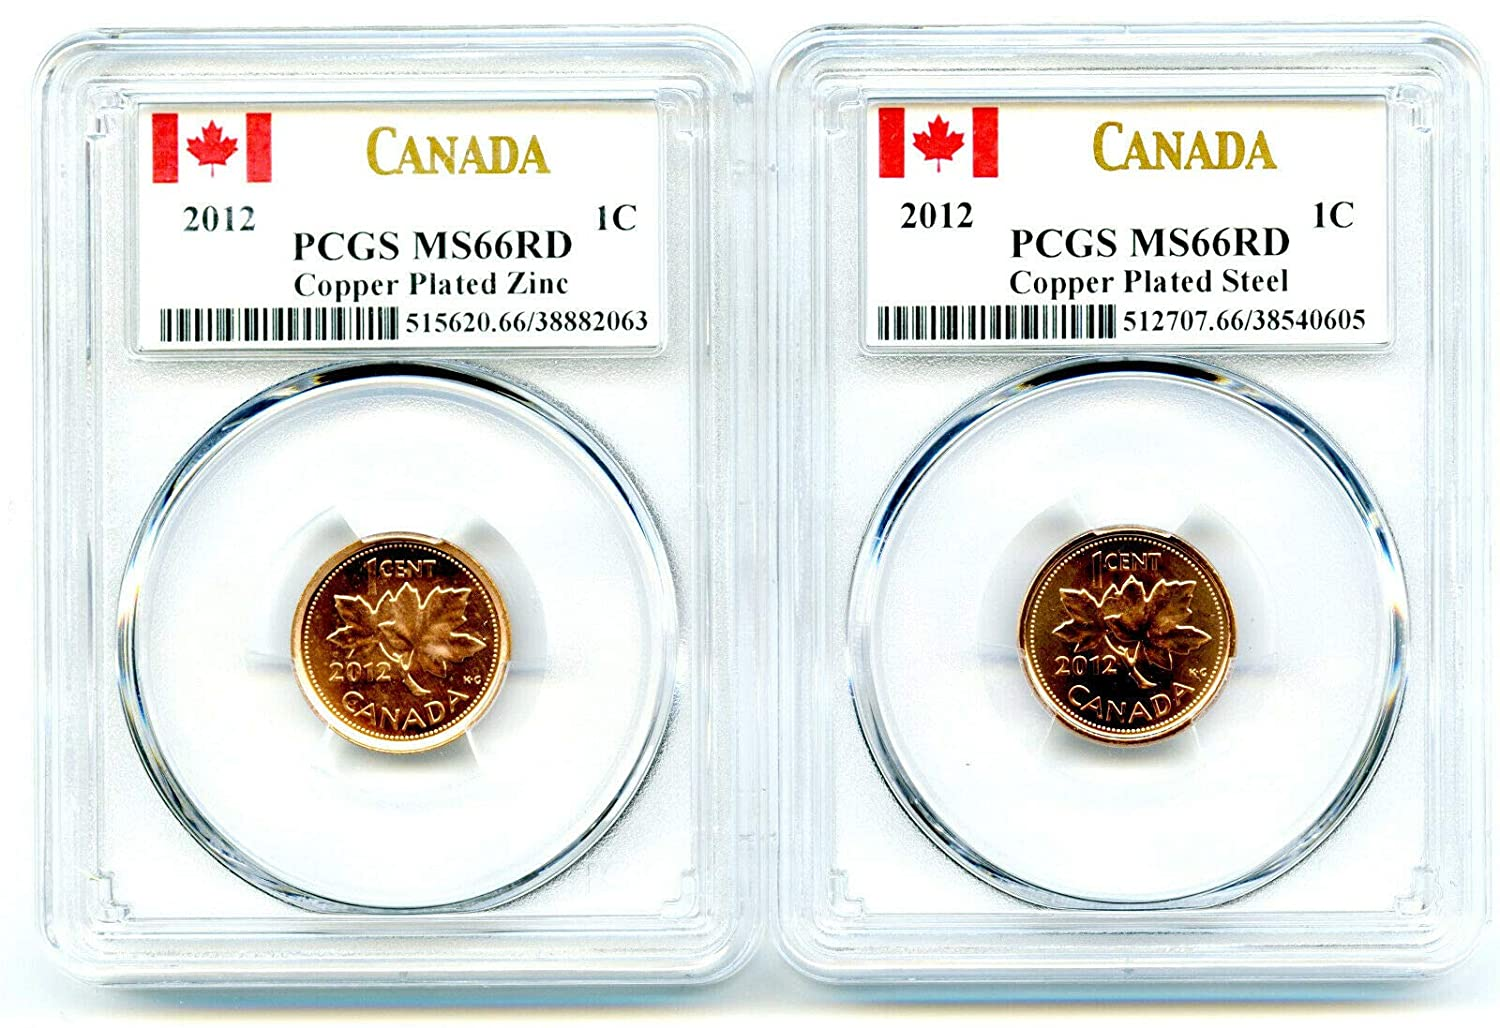 Baltimore Mall 2012 Royal Max 49% OFF Canadian Mint Canada TWO COIN STEEL AND PLATED COPPER